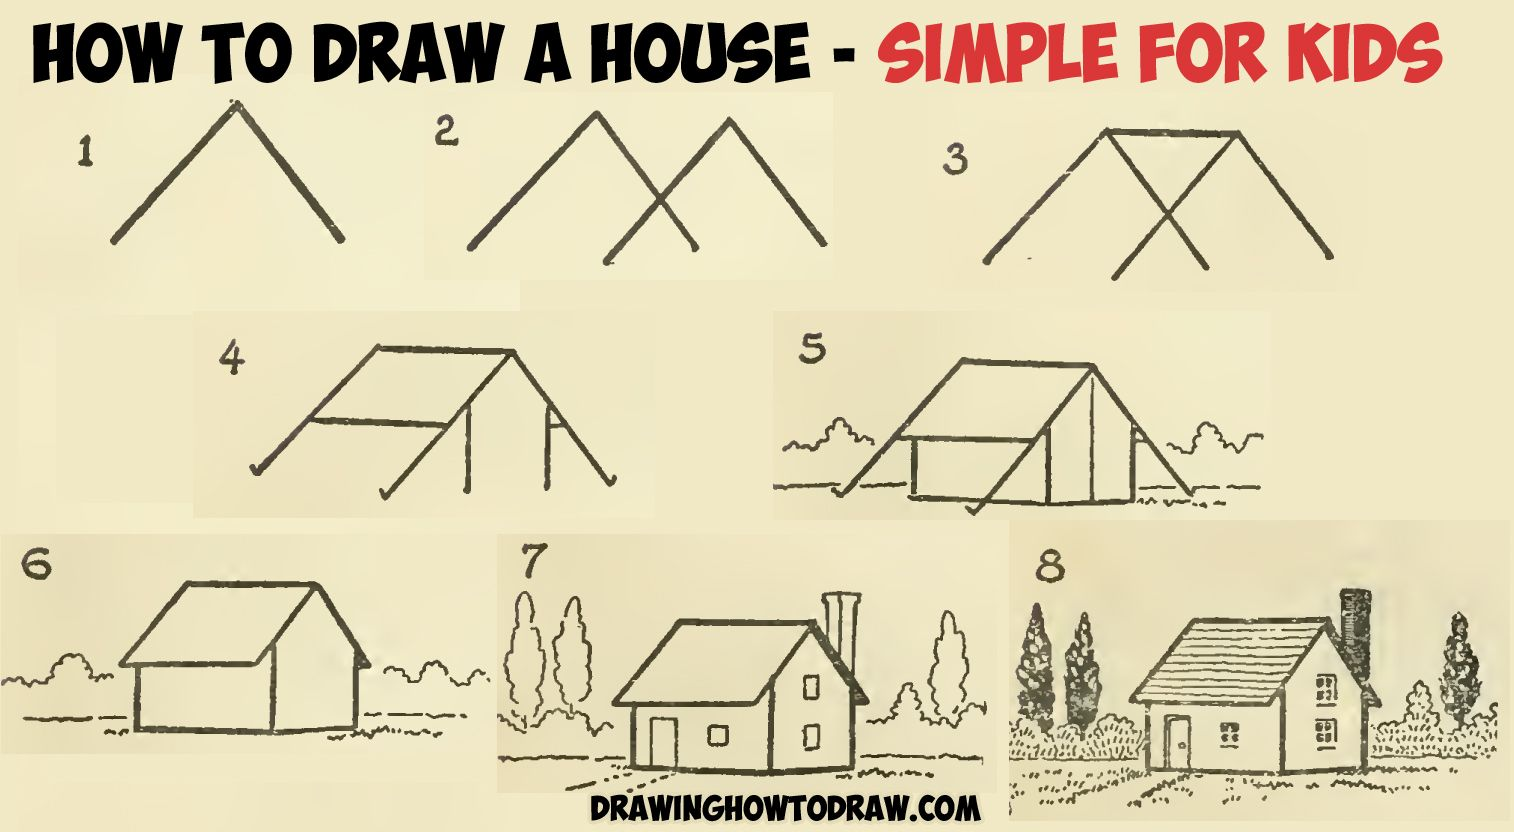 How to draw a simple house with geometric shapes easy step by step drawing tutorial for